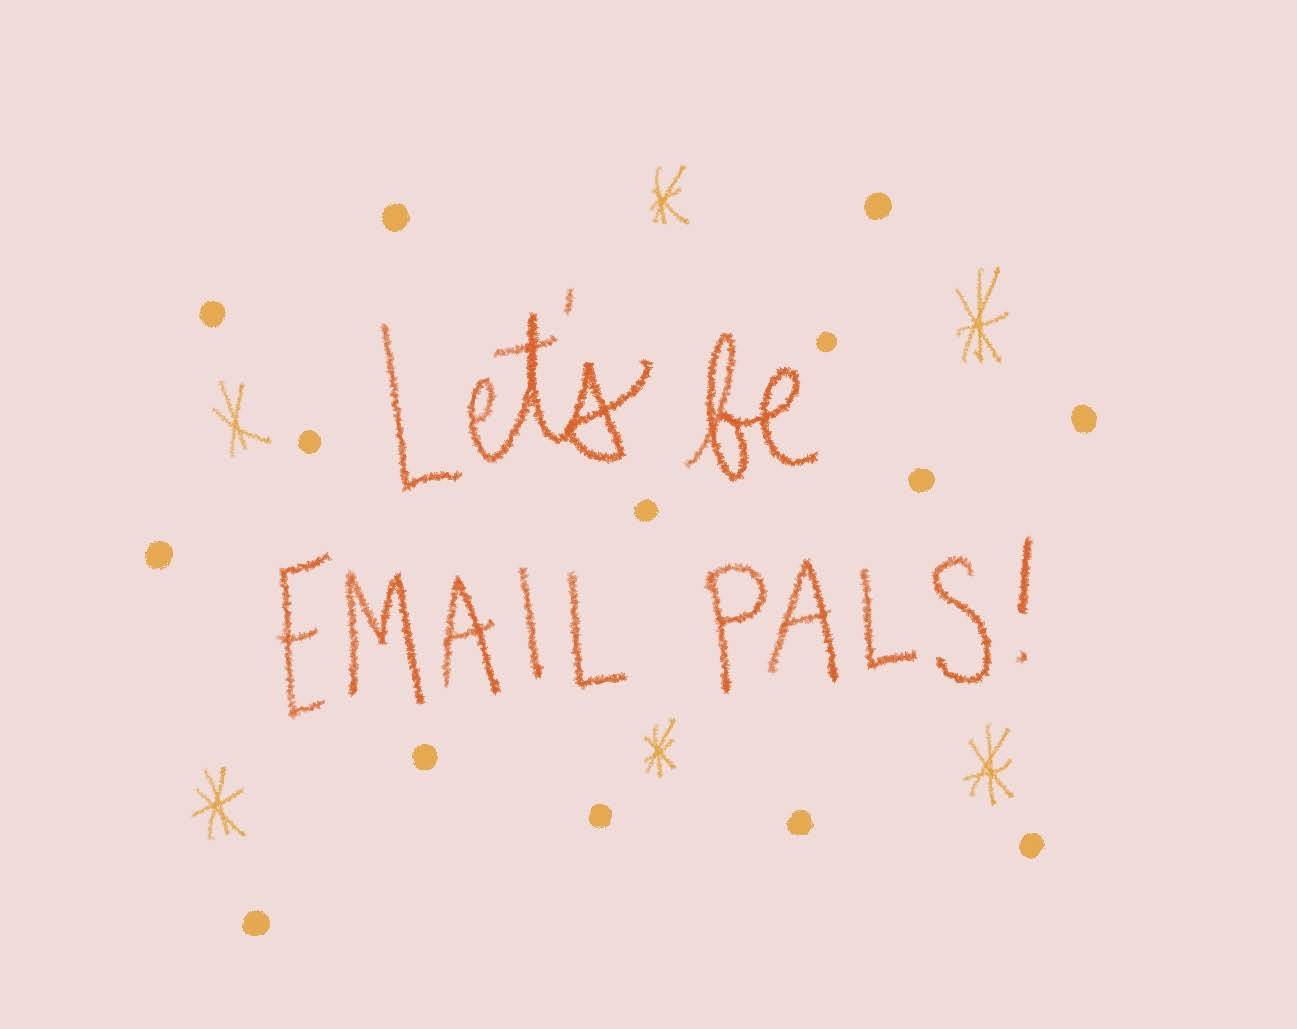 Sign up here to keep in touch! - I'll send you an email about once a month with some treats and an update from the studio, and also you'll be the first to know when new patterns and products are released! The best way to keep in touch!